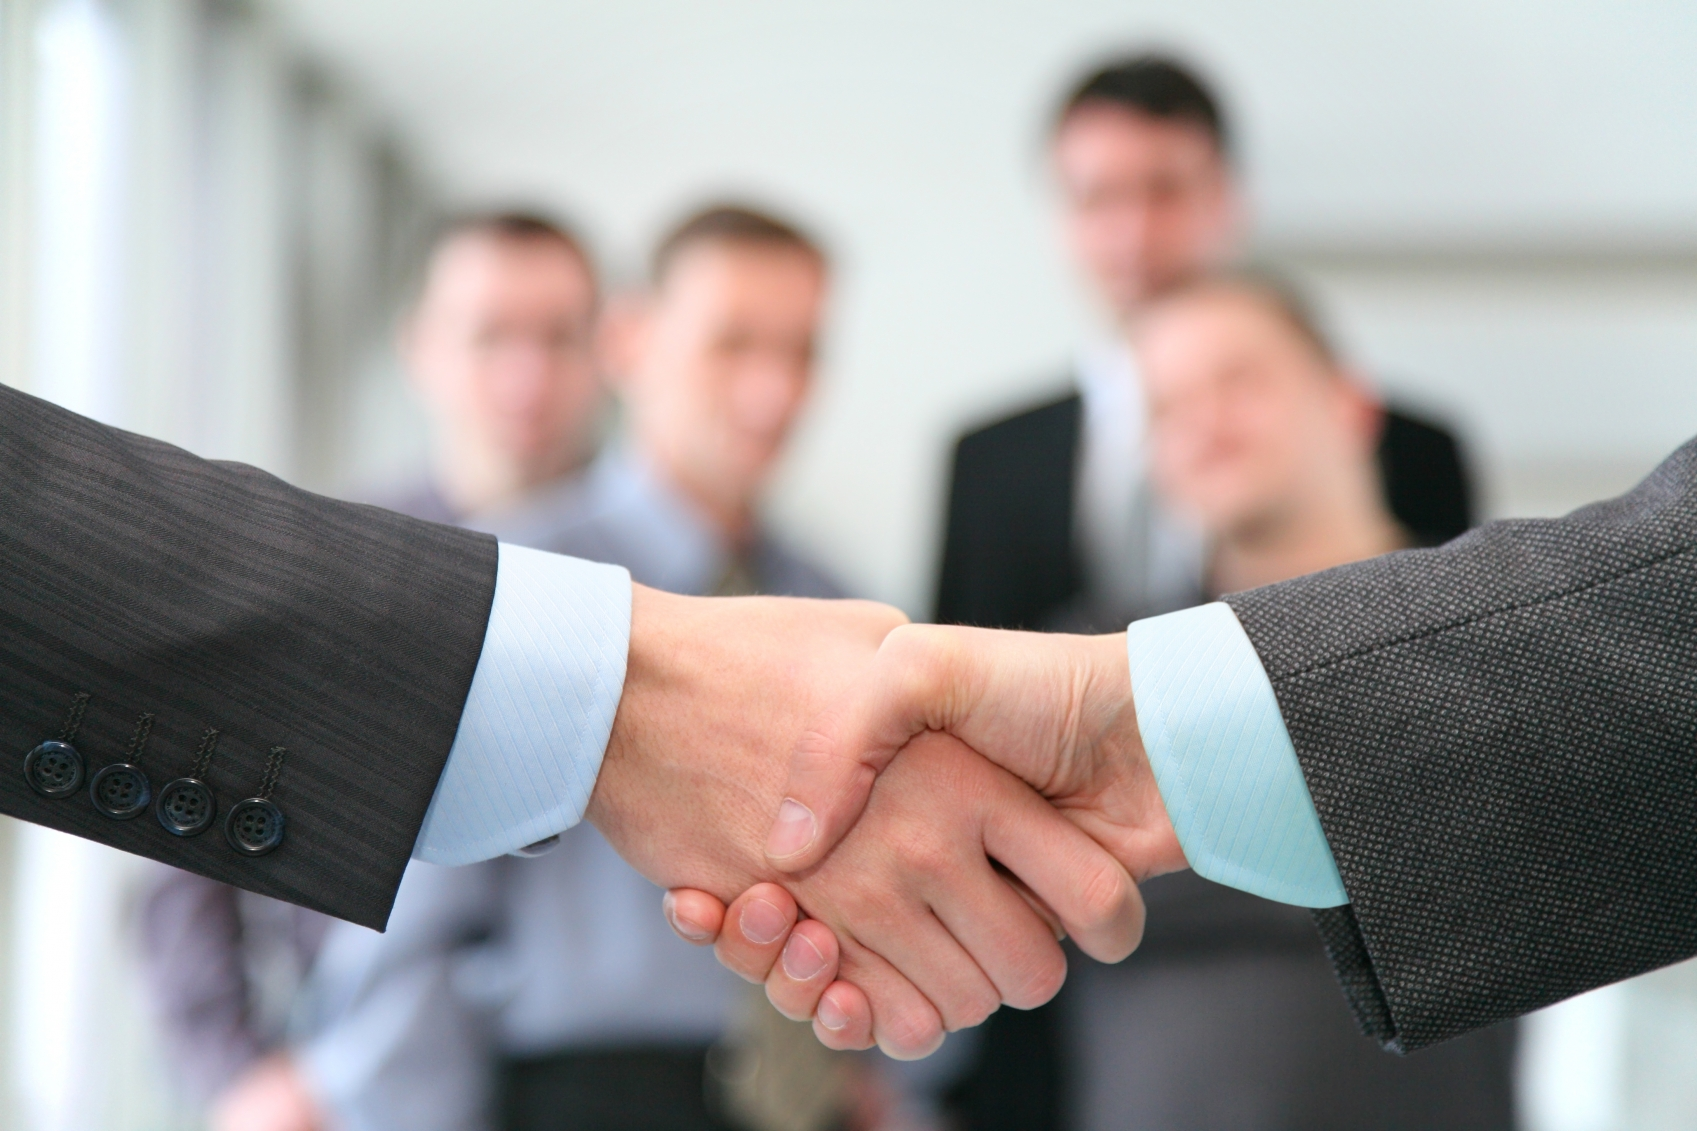 7 steps to write a sales representative agreement for legal protection, Human Body